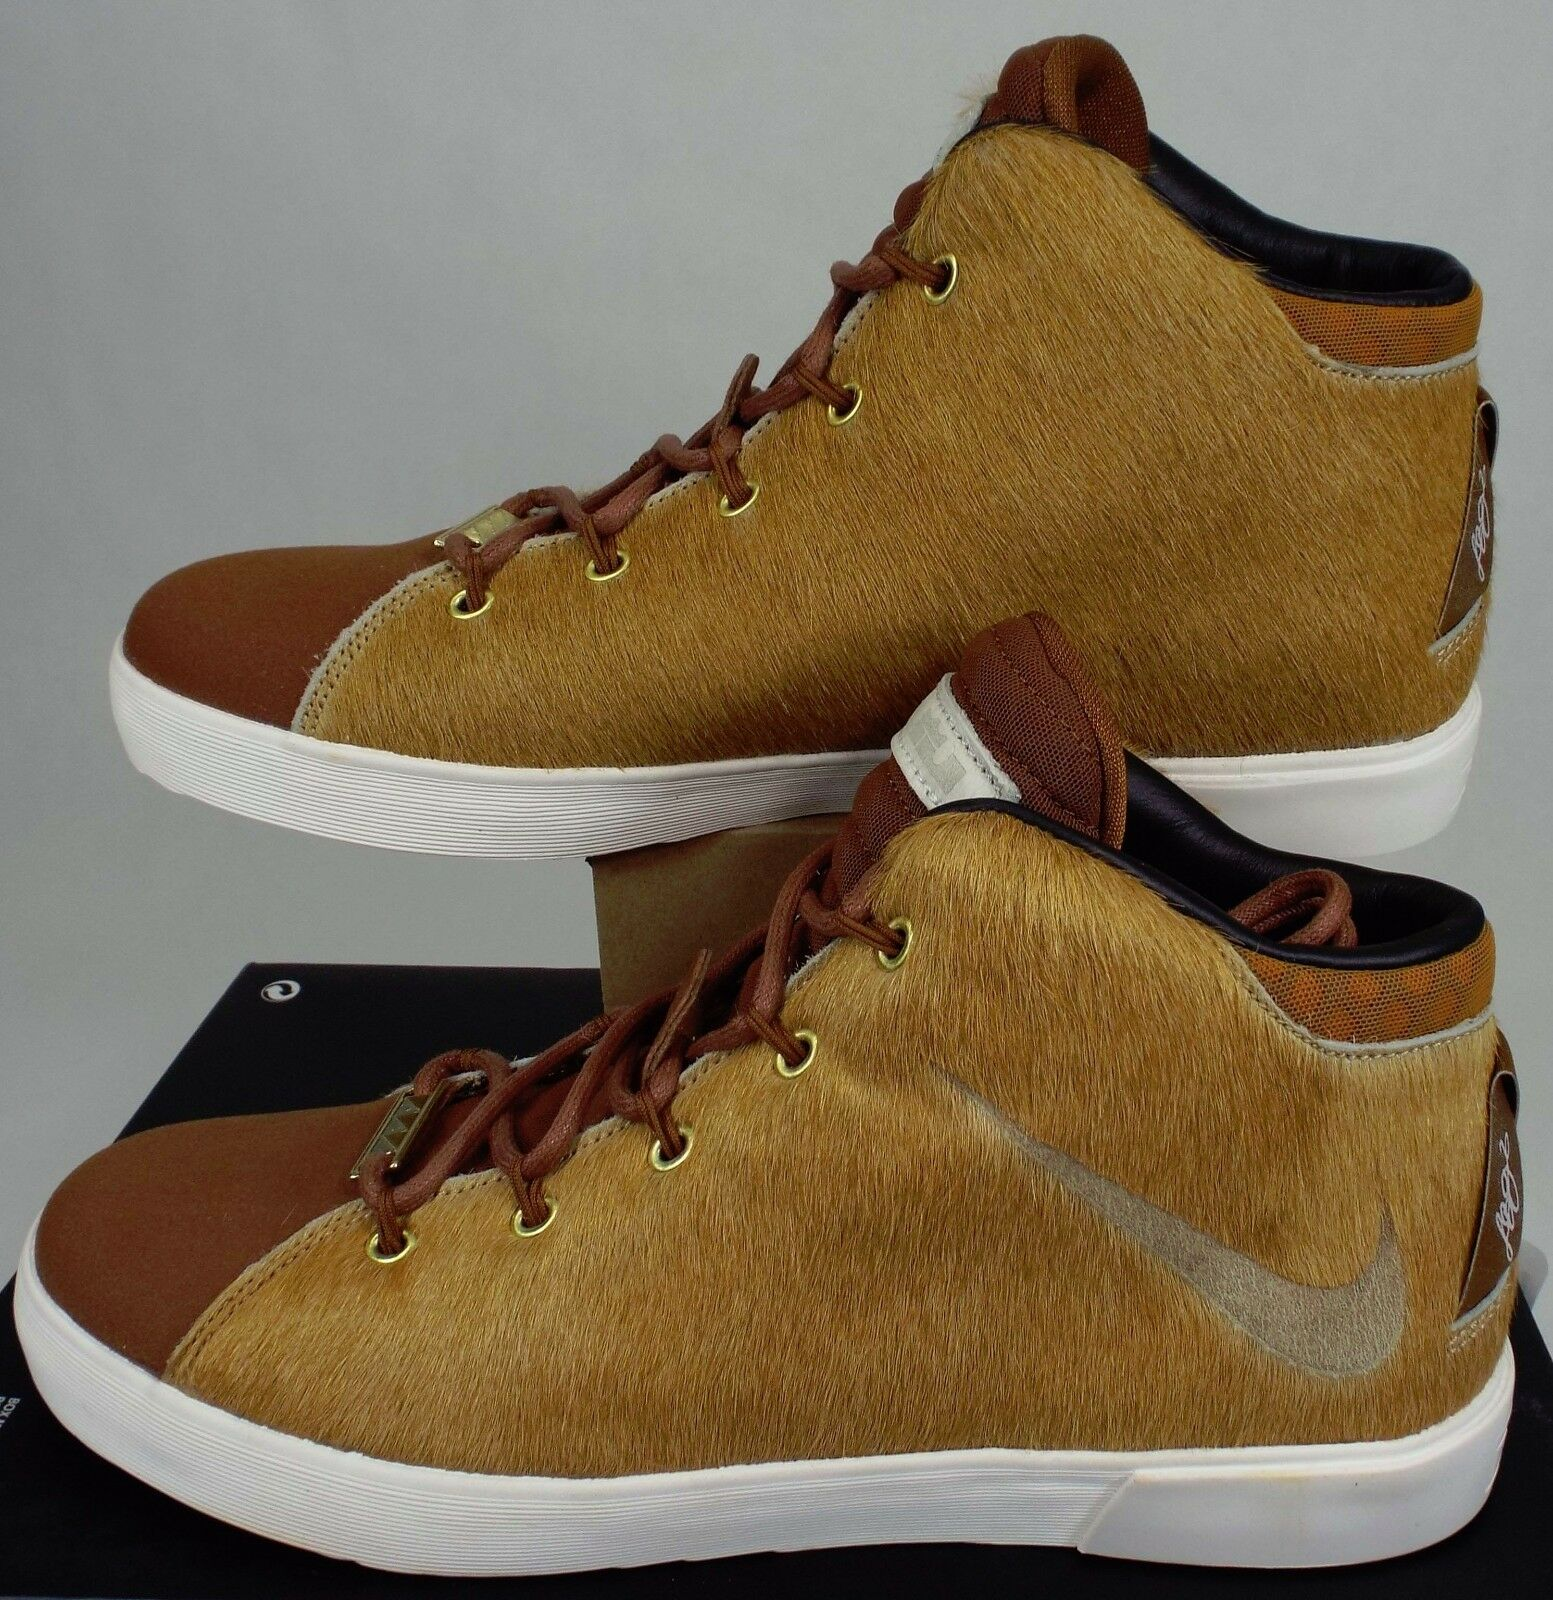 New Hommes 8 NIKE Lebron QS XII NSW Lion Lifestyle QS Lebron Brown Chaussures 716418-200 63ad95